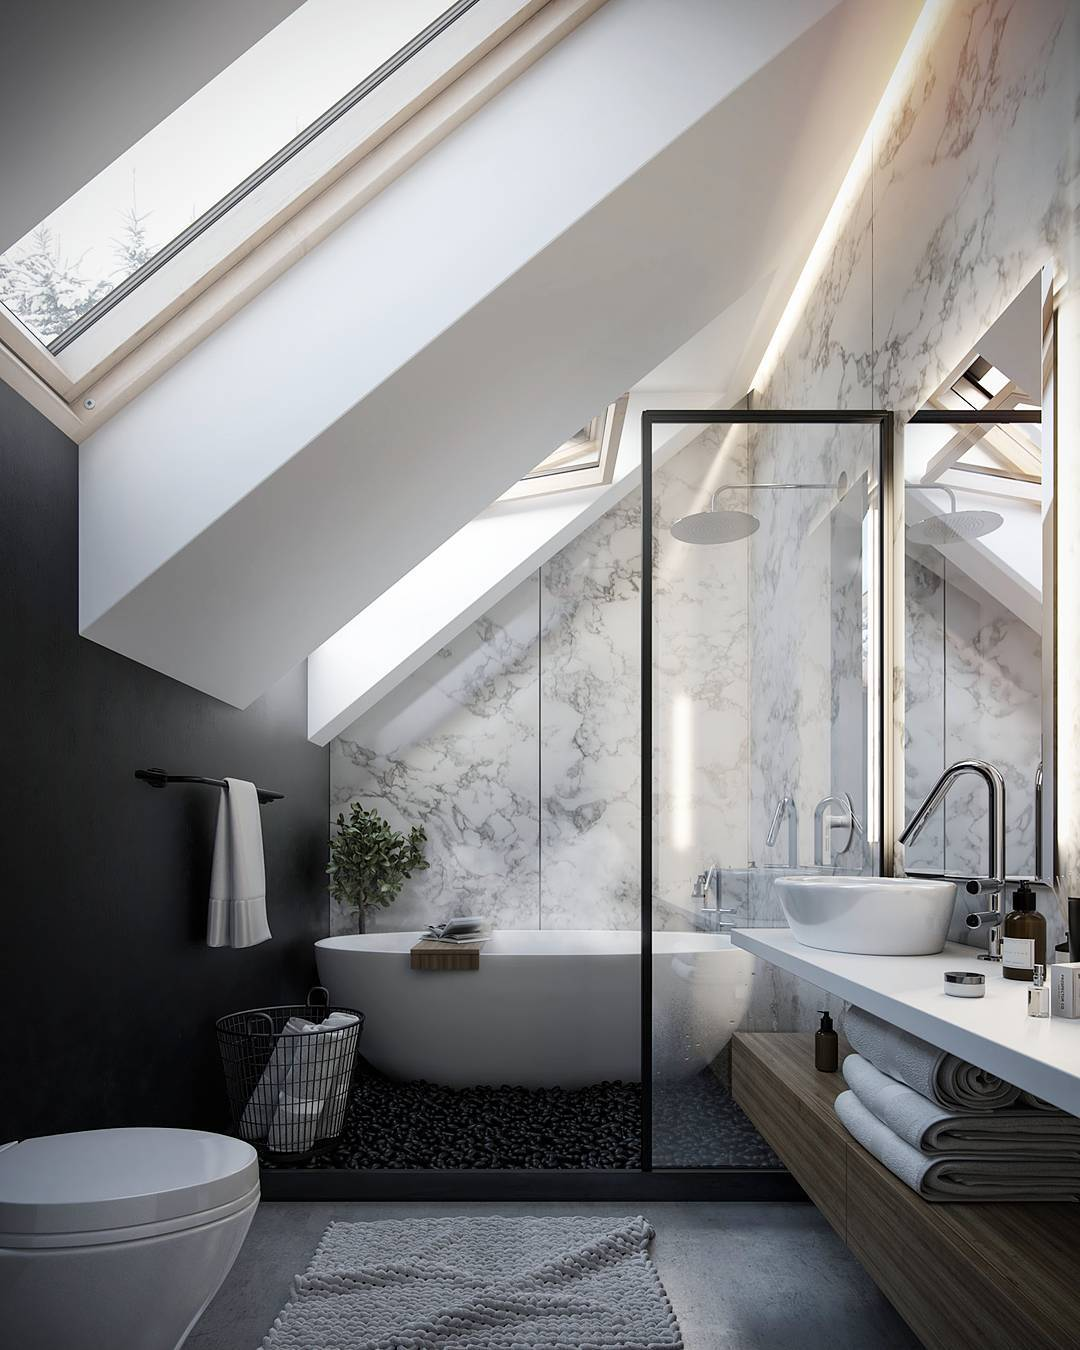 """@anna__potapenko's cover photo for 'Anna Potapenko on Instagram: """"That's final! Enough for that project! ))) 🎉😁🙈 #houzzrender #render_contest #instarender #rendercollective #renderizer #cgartistlab…""""'"""